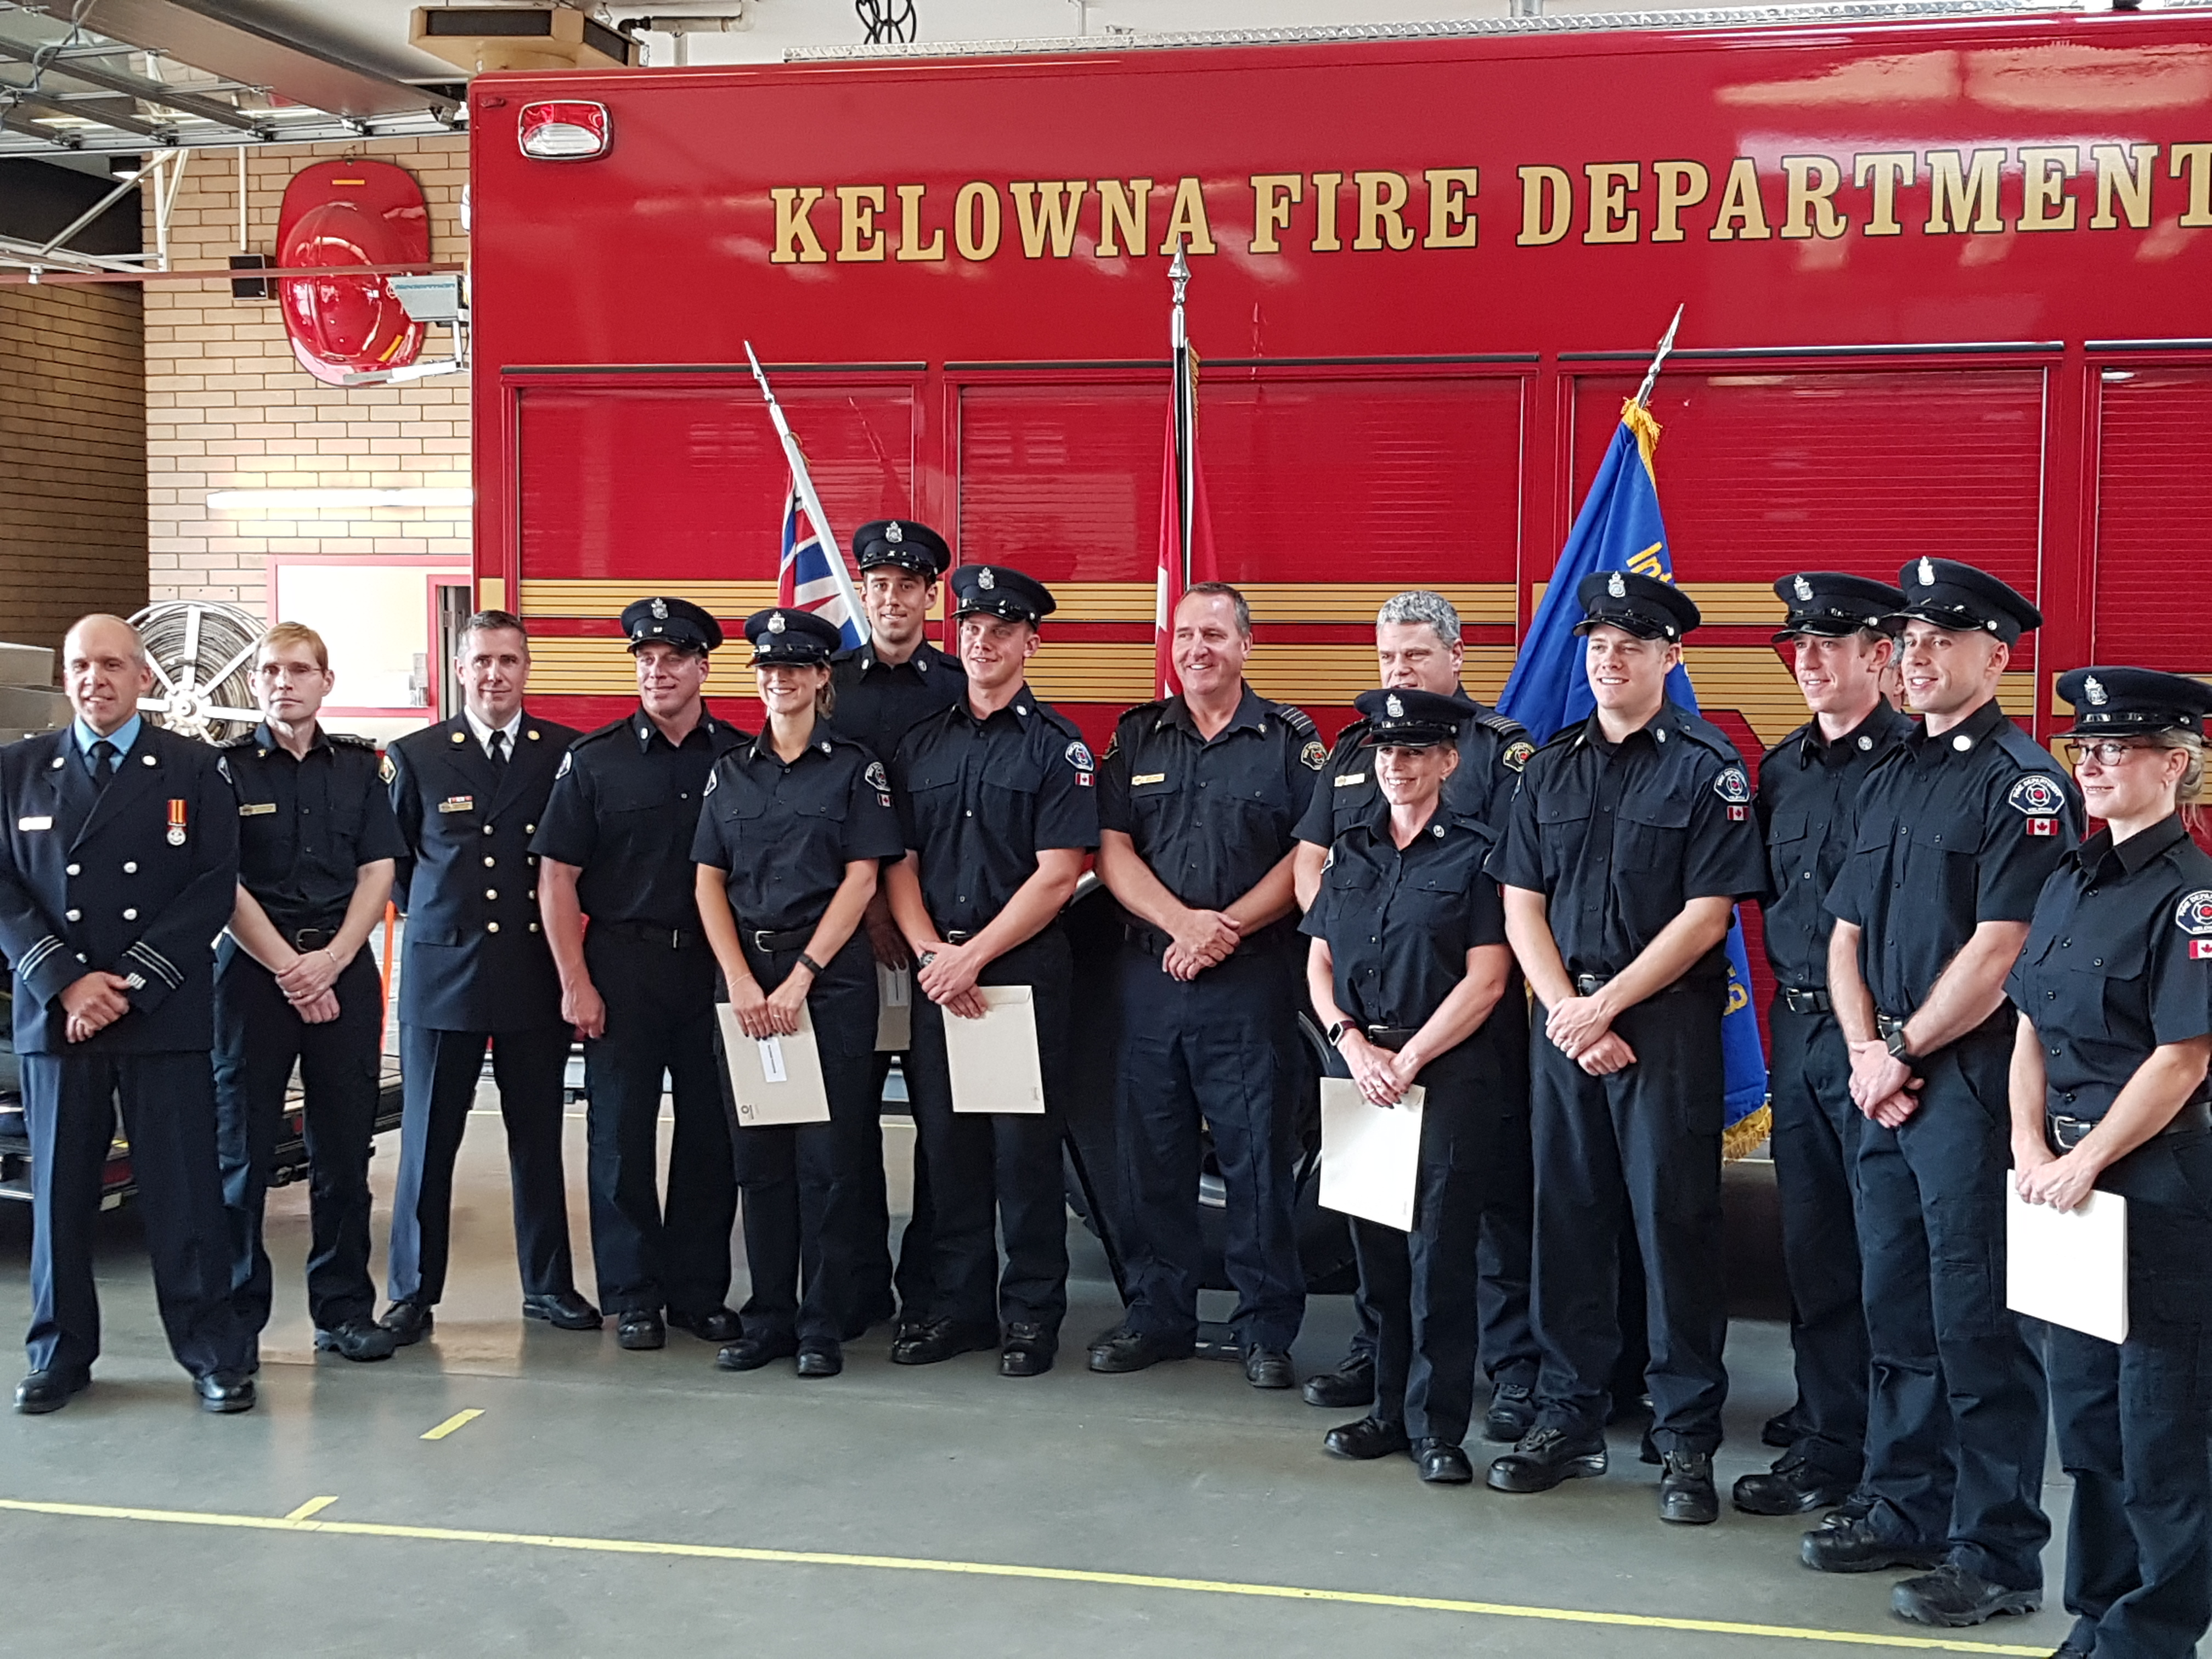 Kelowna Fire Department Graduation